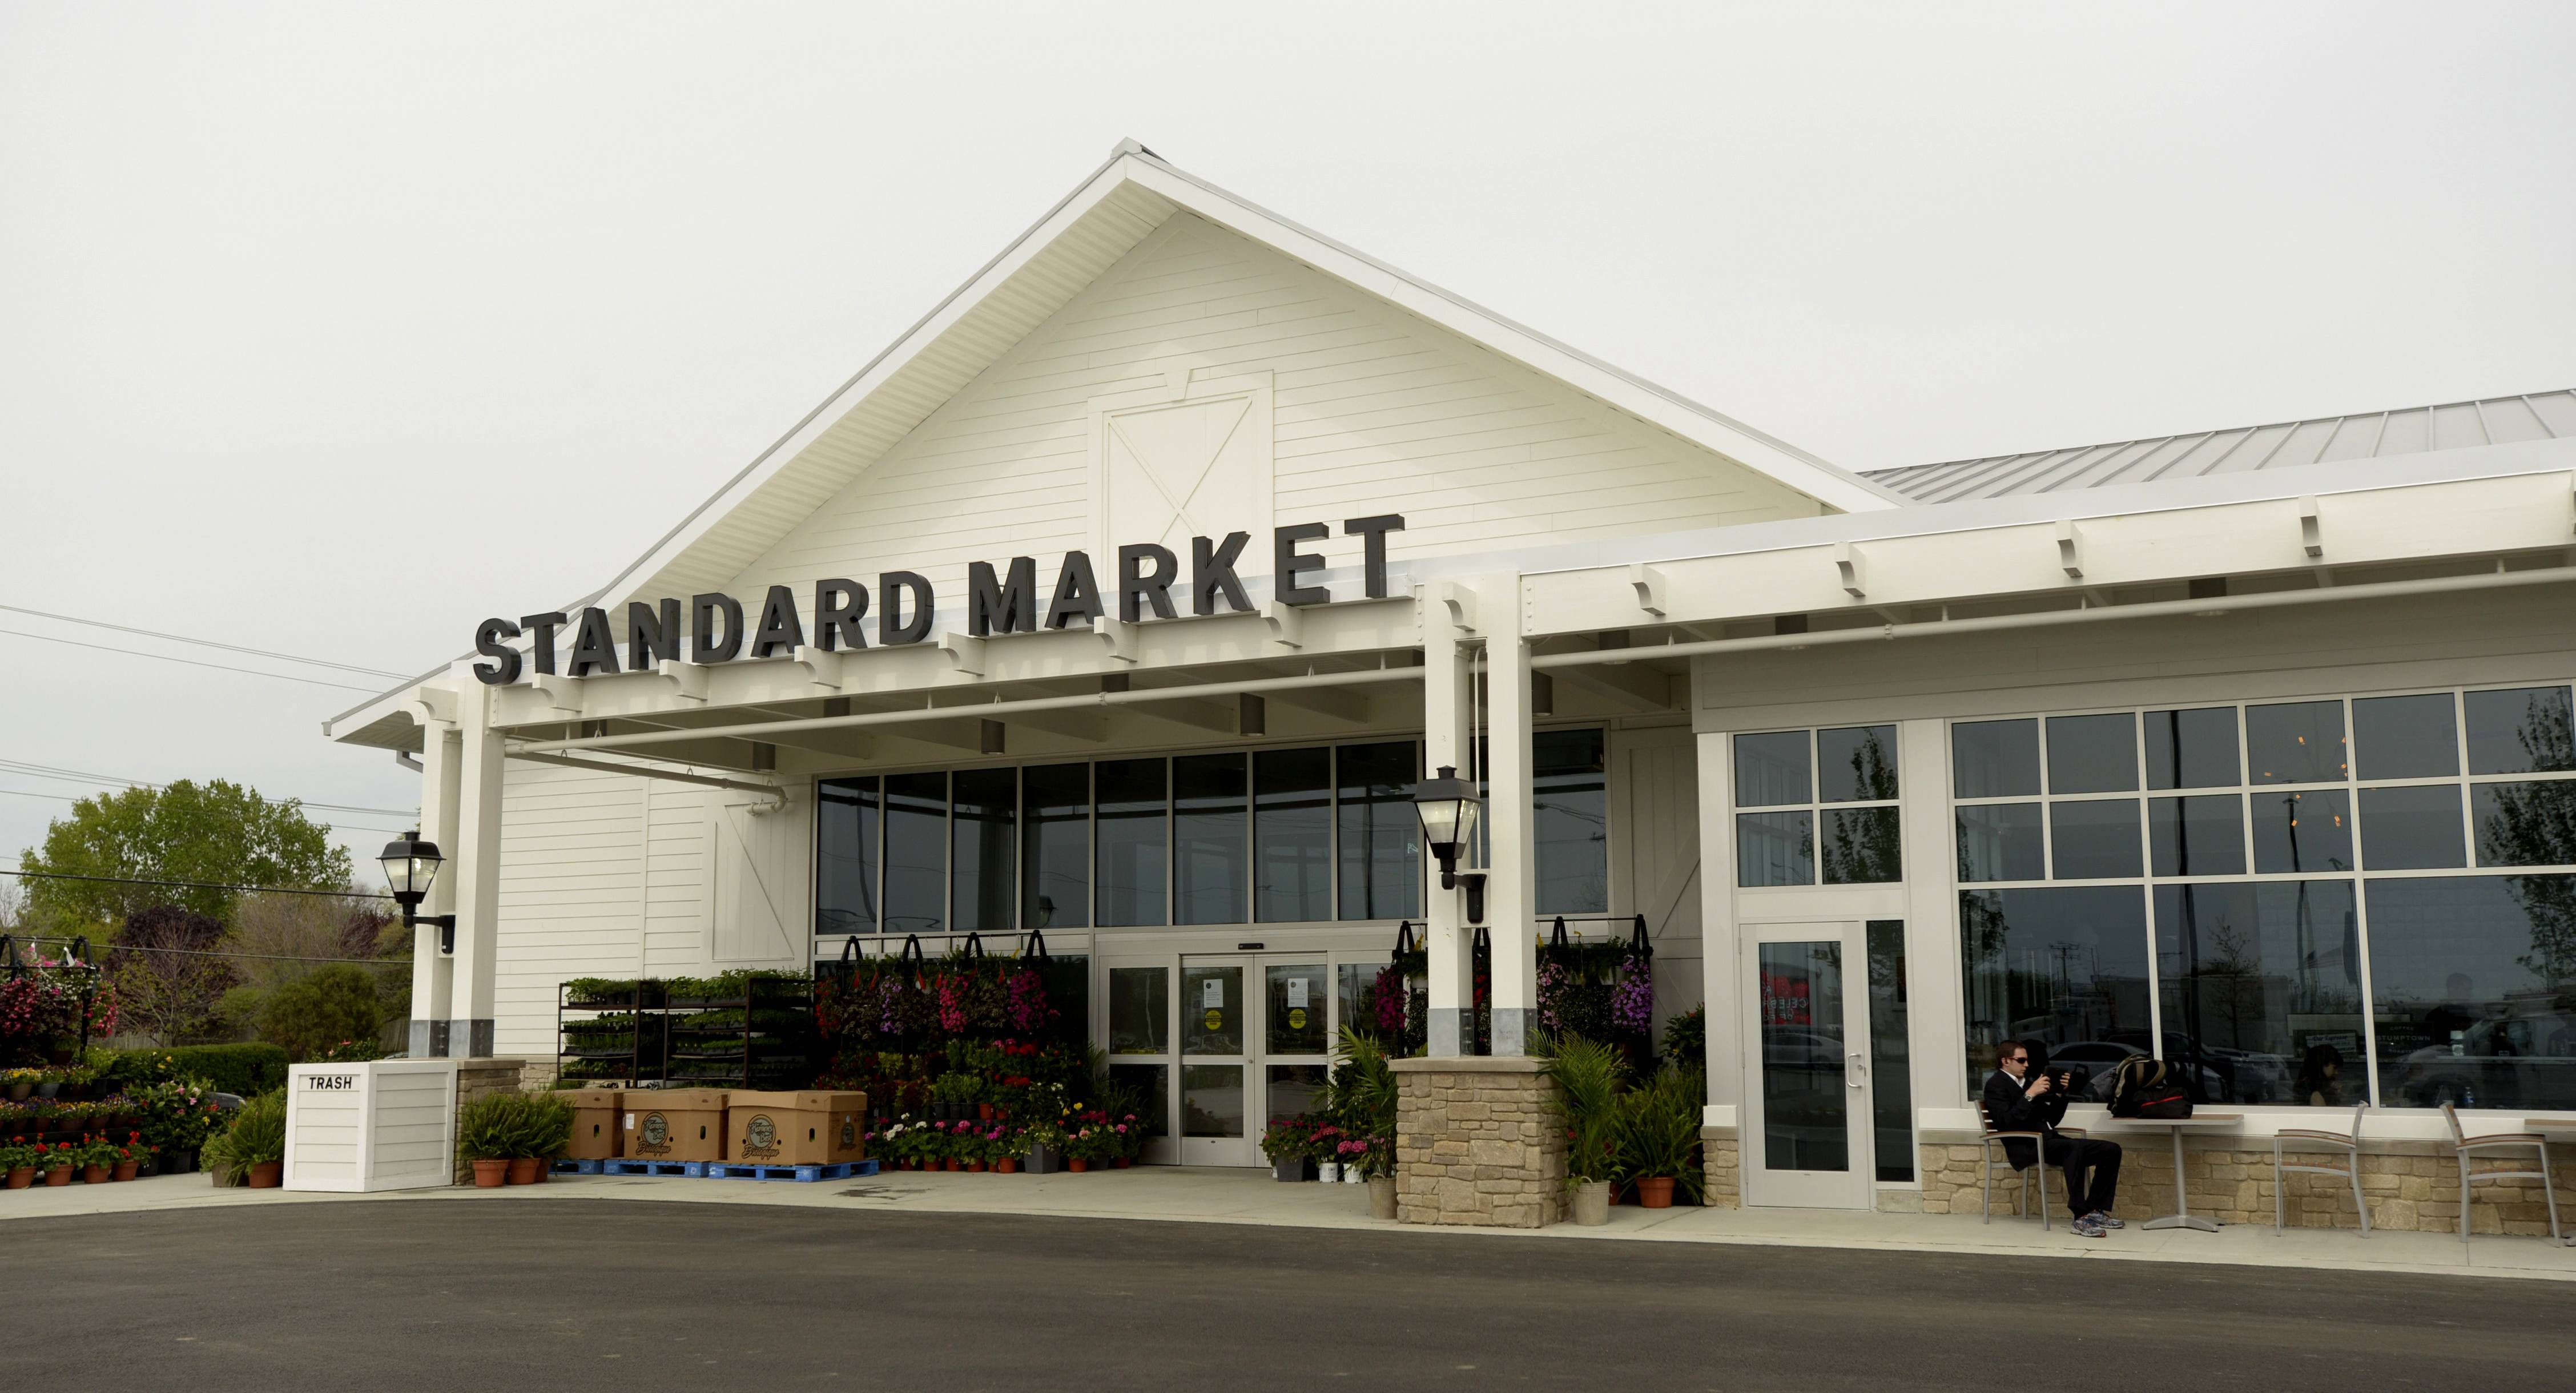 Standard Market will open its second location Tuesday at 1508 Aurora Ave. in Naperville.